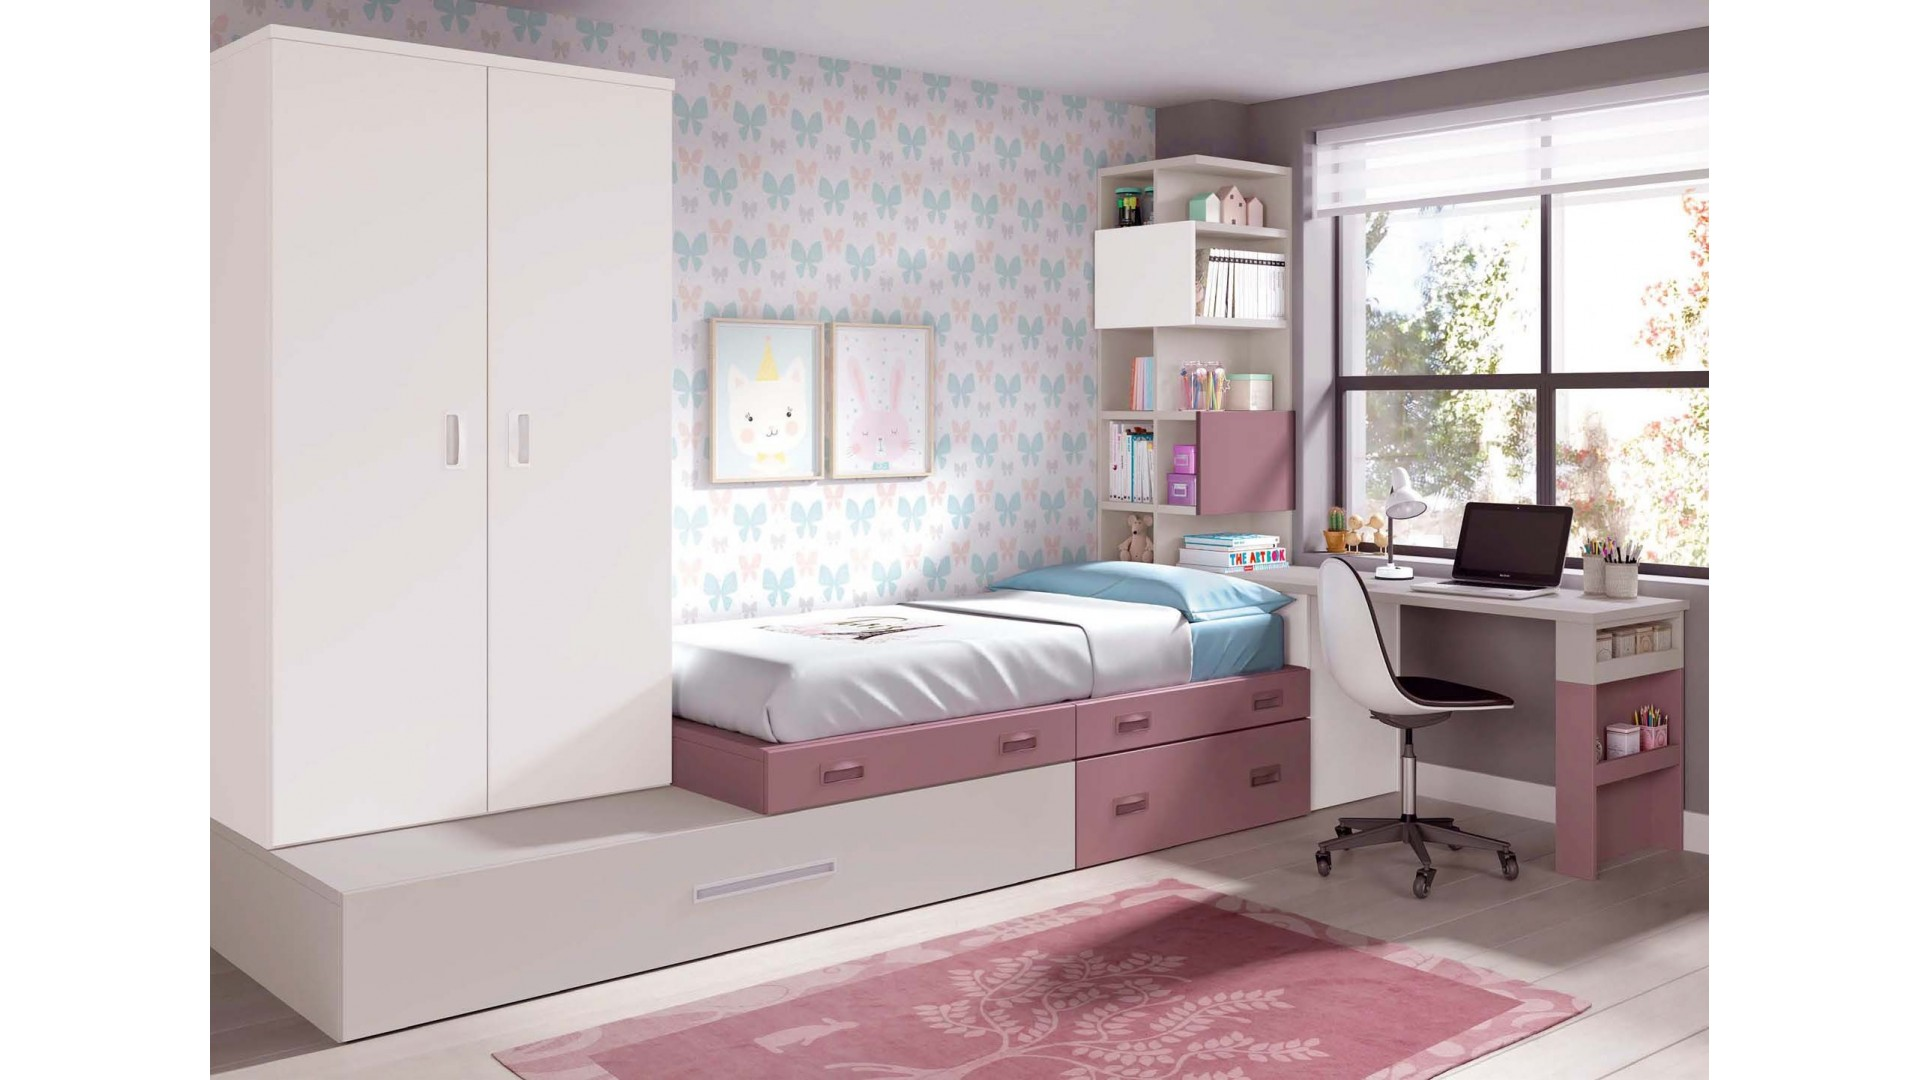 chambre pour enfant et lit estrade glicerio so nuit. Black Bedroom Furniture Sets. Home Design Ideas